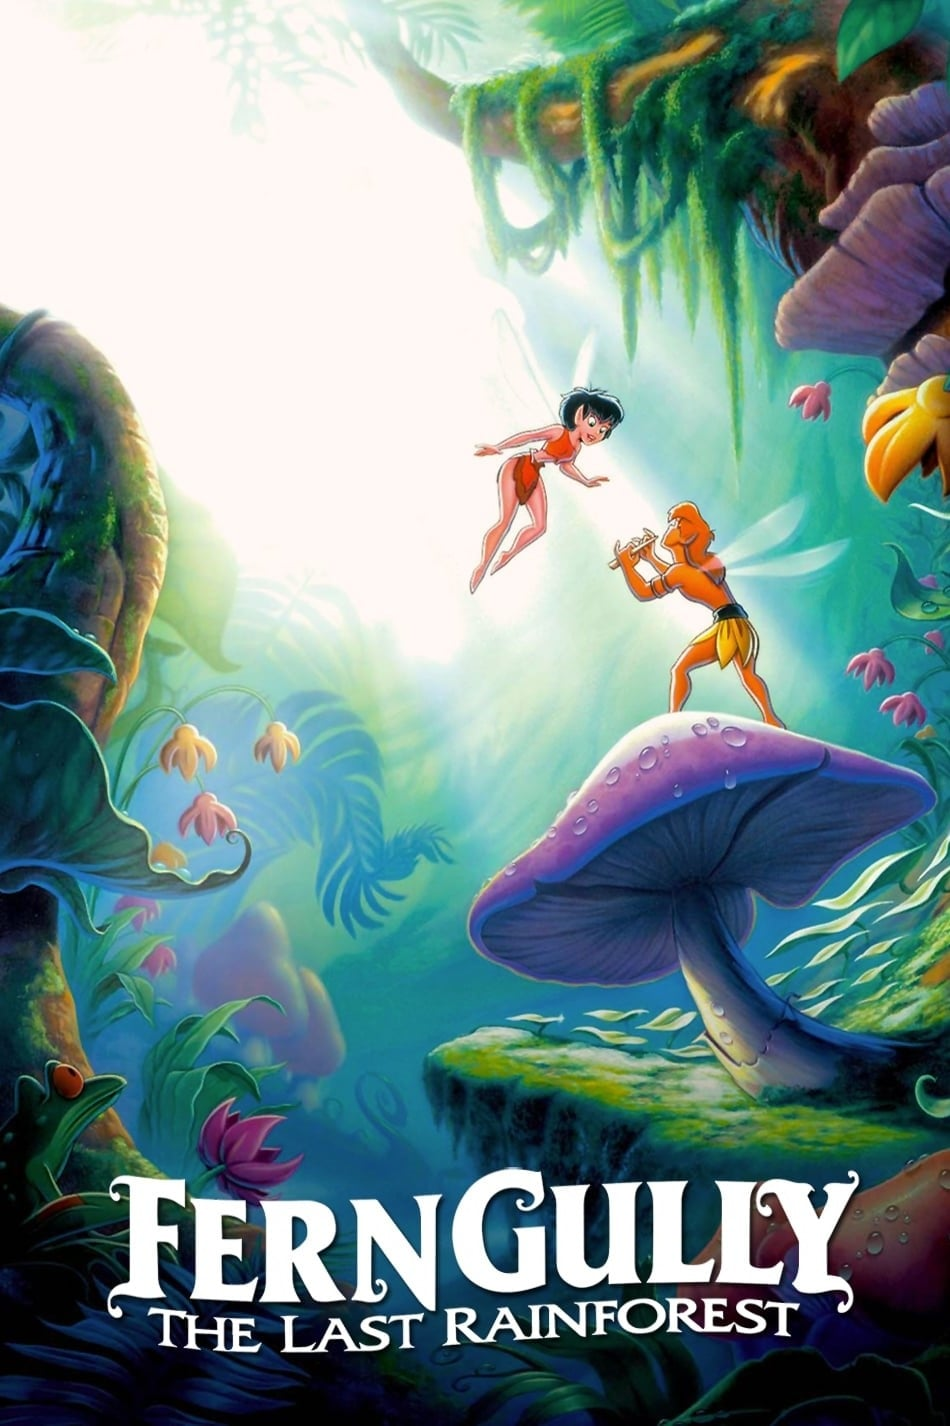 Watch FernGully: The Last Rainforest Online